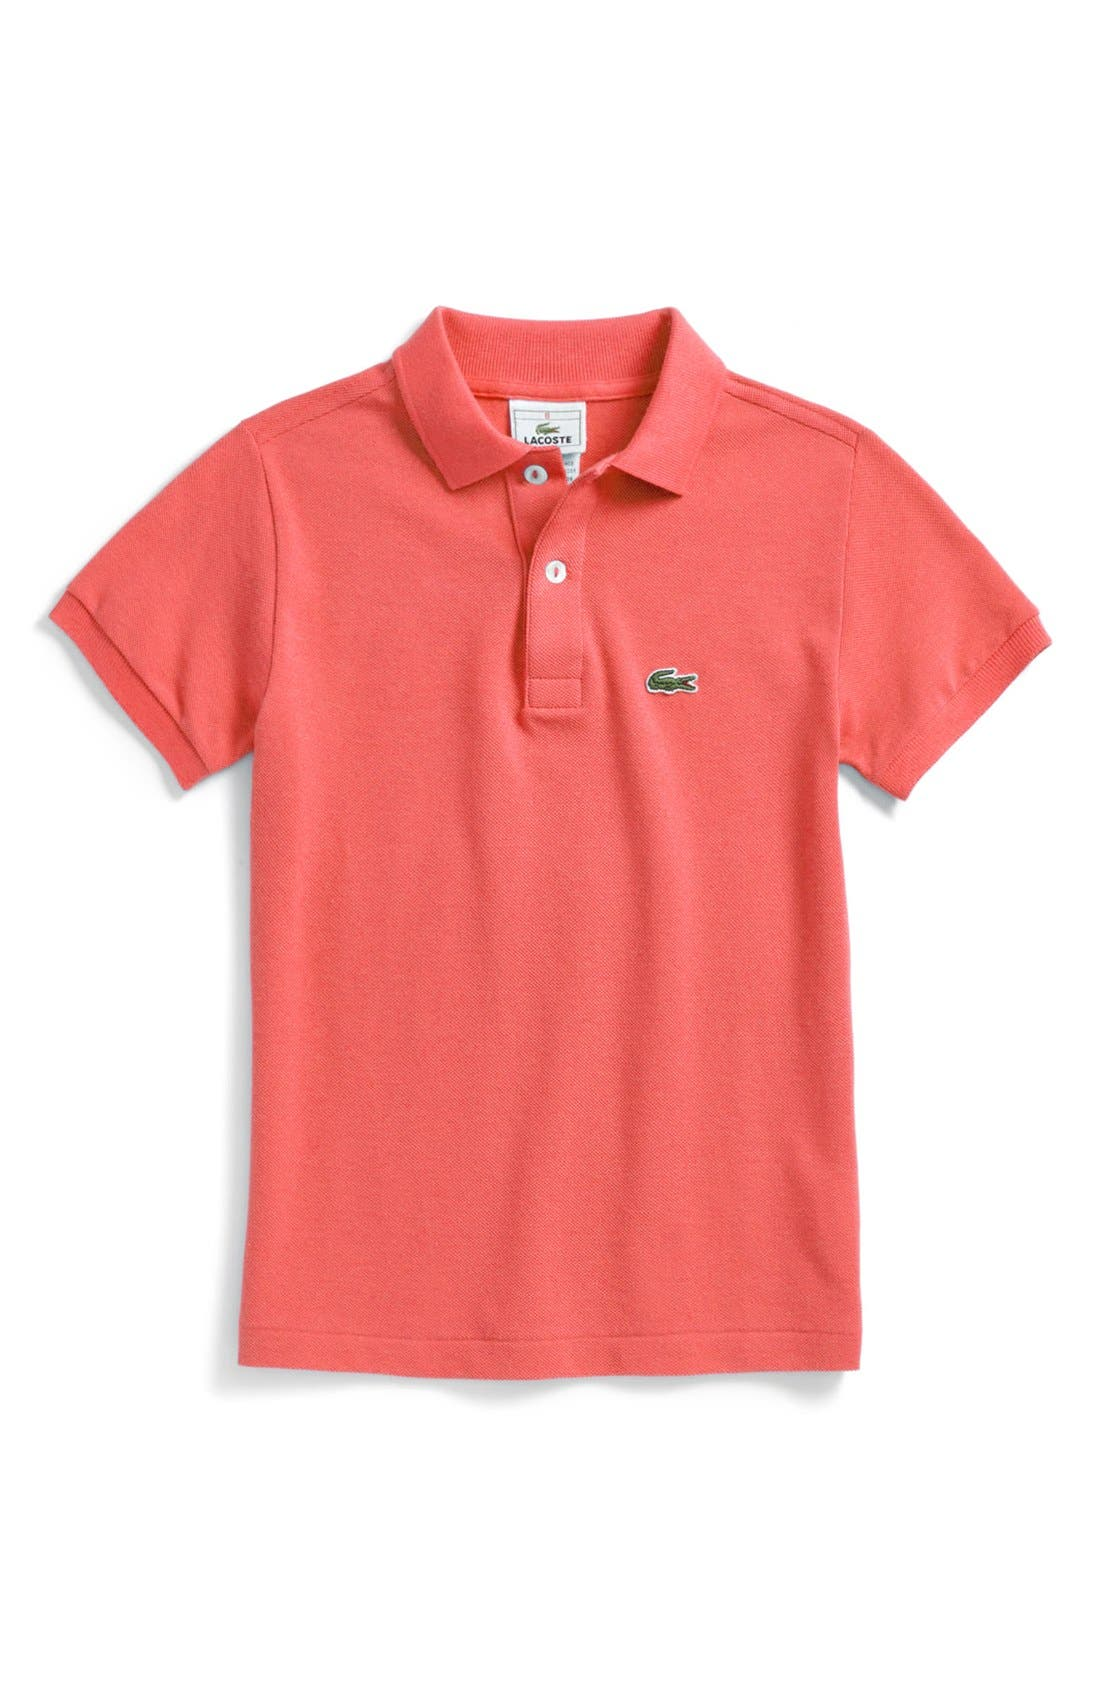 Alternate Image 1 Selected - Lacoste Short Sleeve Polo (Toddler)